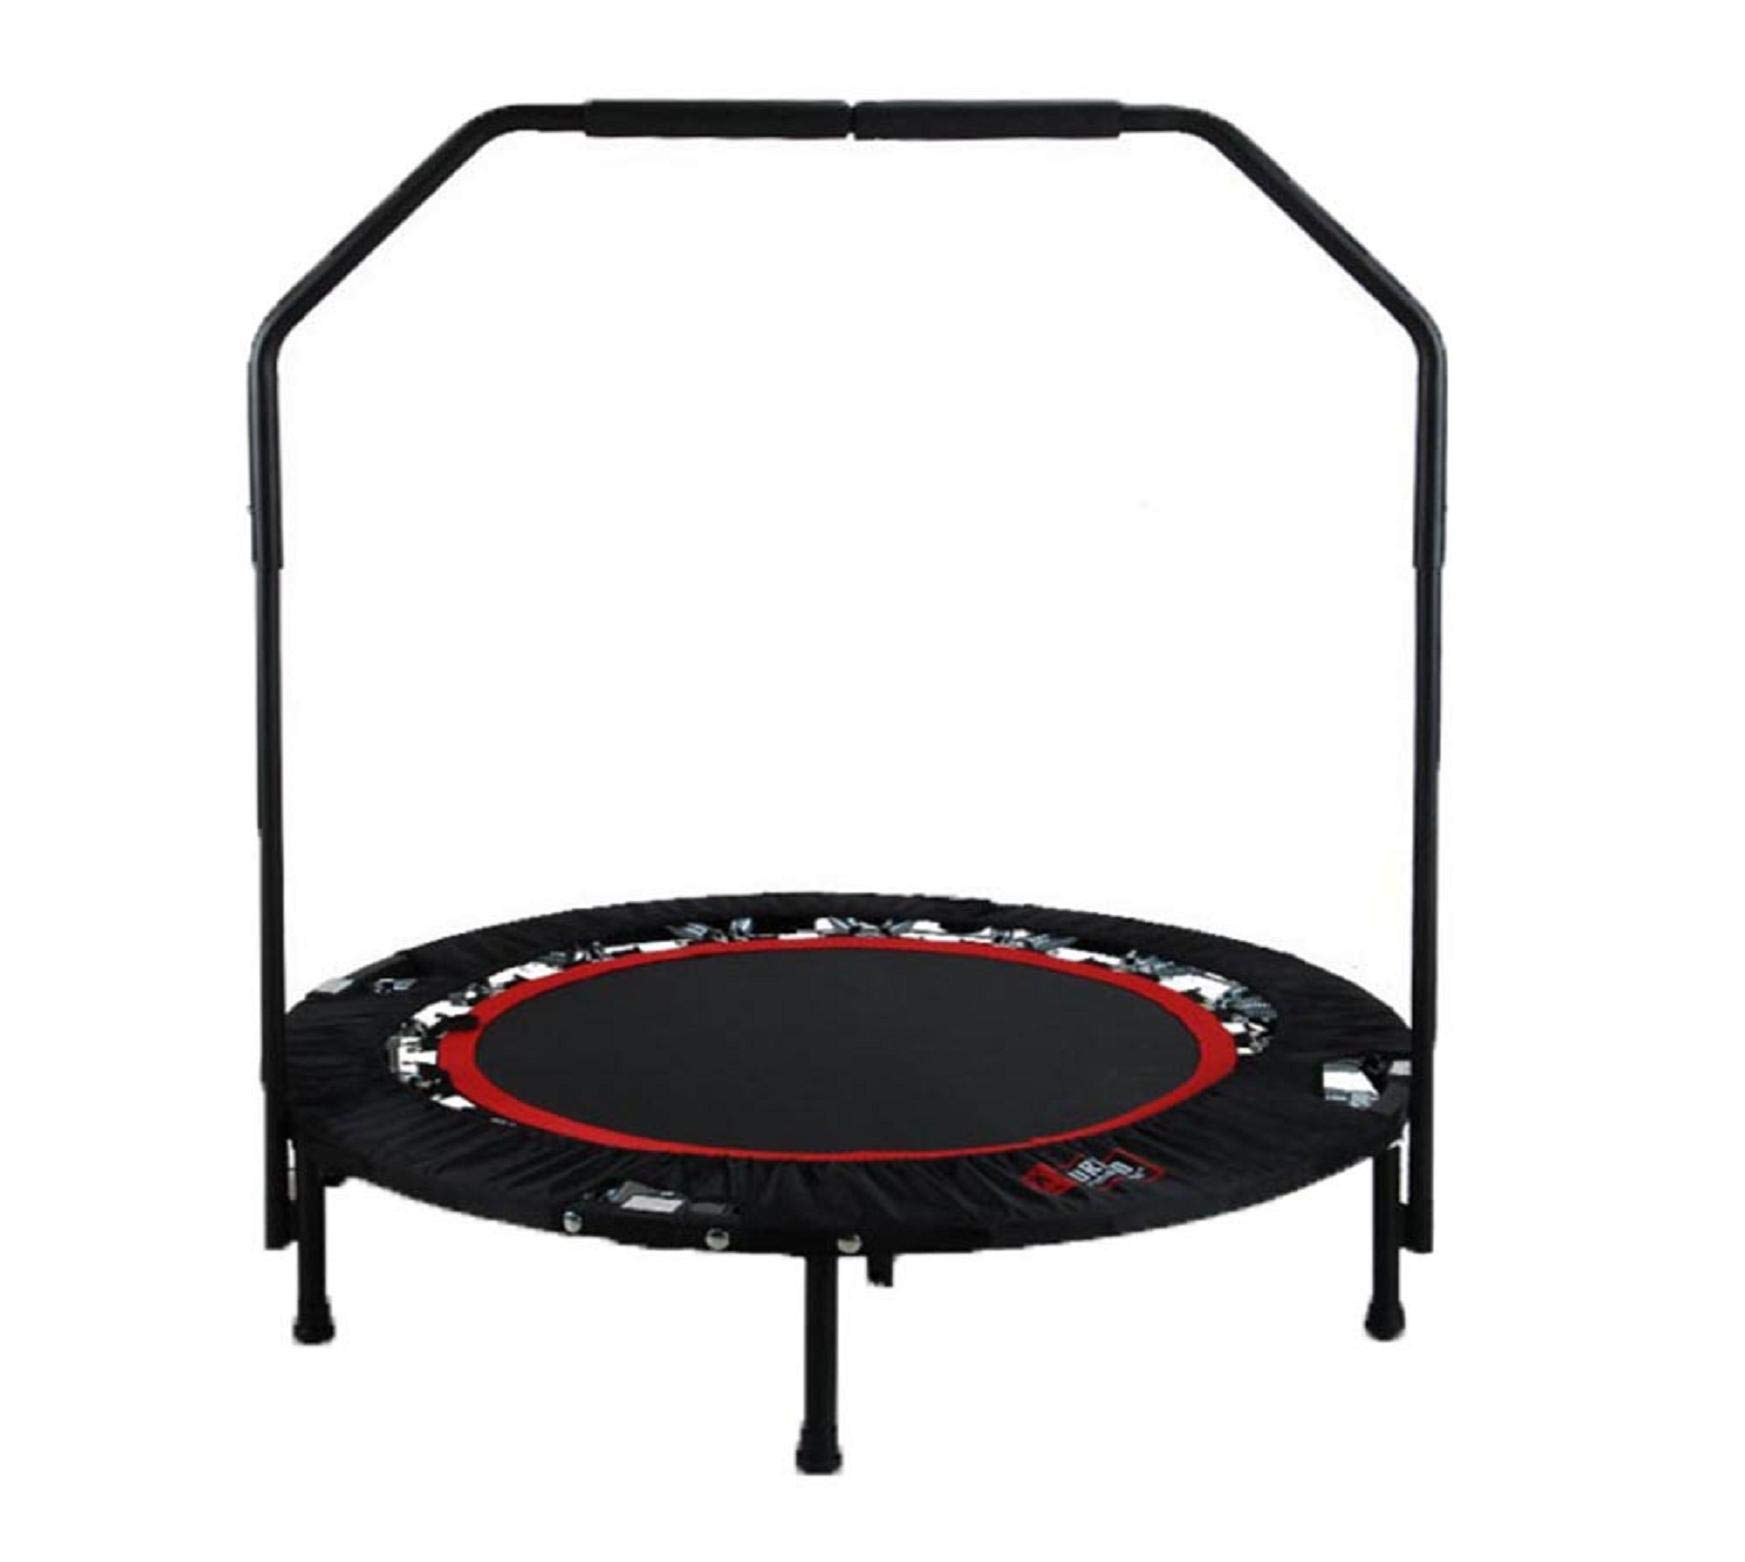 Vertily Folding Trampoline,Household Folding Trampoline Gym Commercial Bounce Bed Adult Round Fitness Bed,Foldable Indoor Rebounder Kids Adults Trampoline for Fitness Cardio